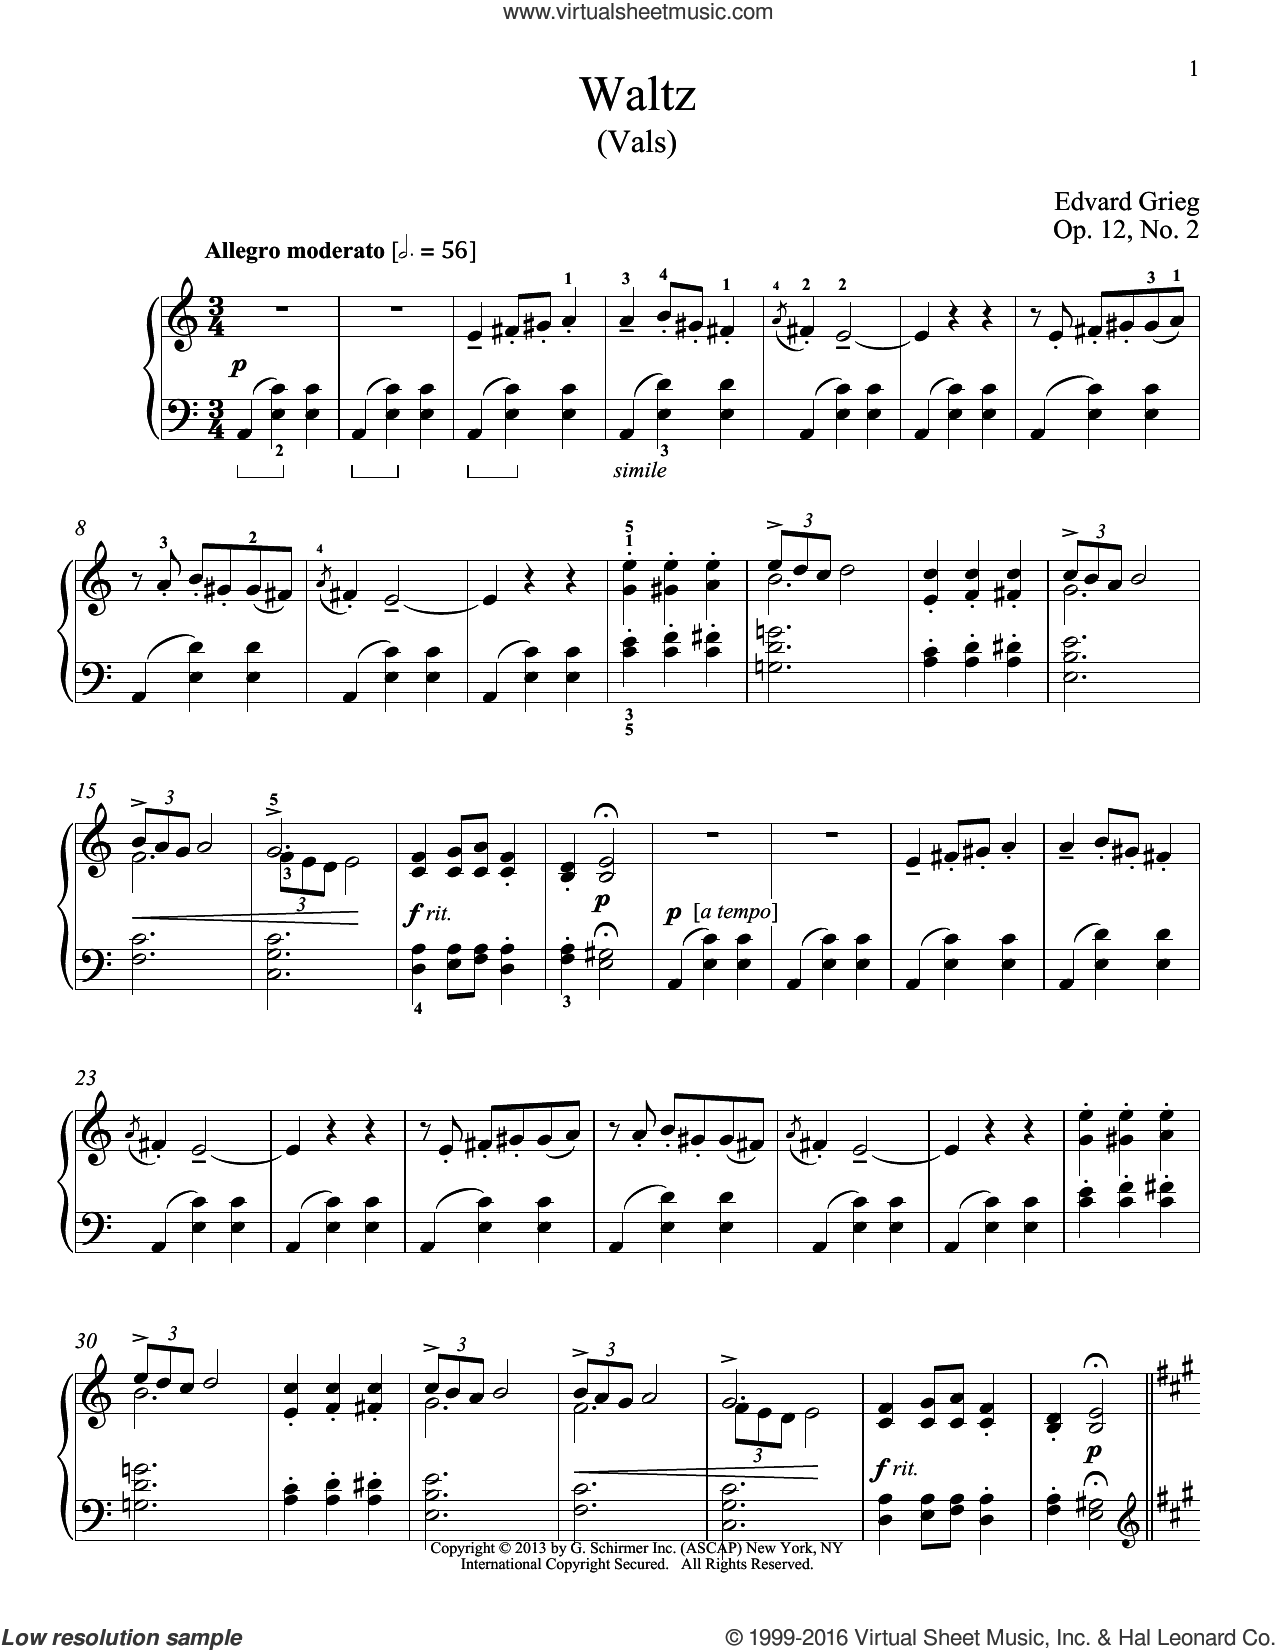 Waltz (Vals), Op. 12, No. 2 sheet music for piano solo by William Westney